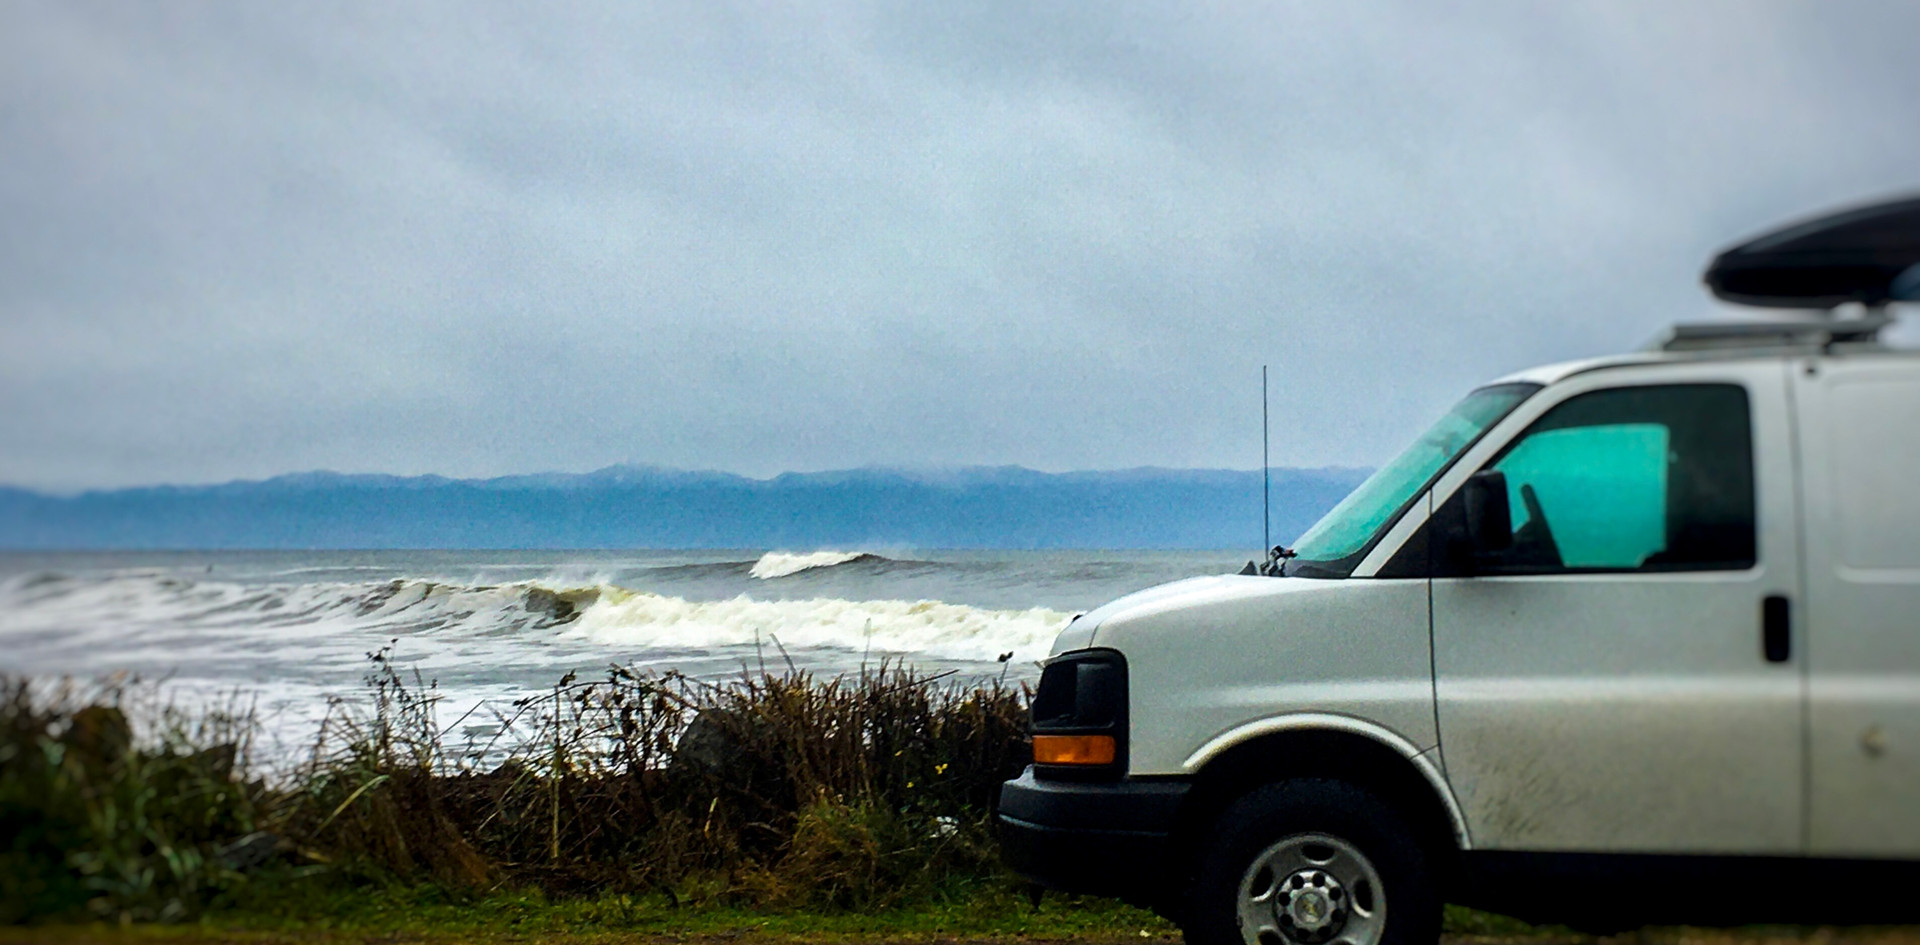 Surfer watching with the campervan